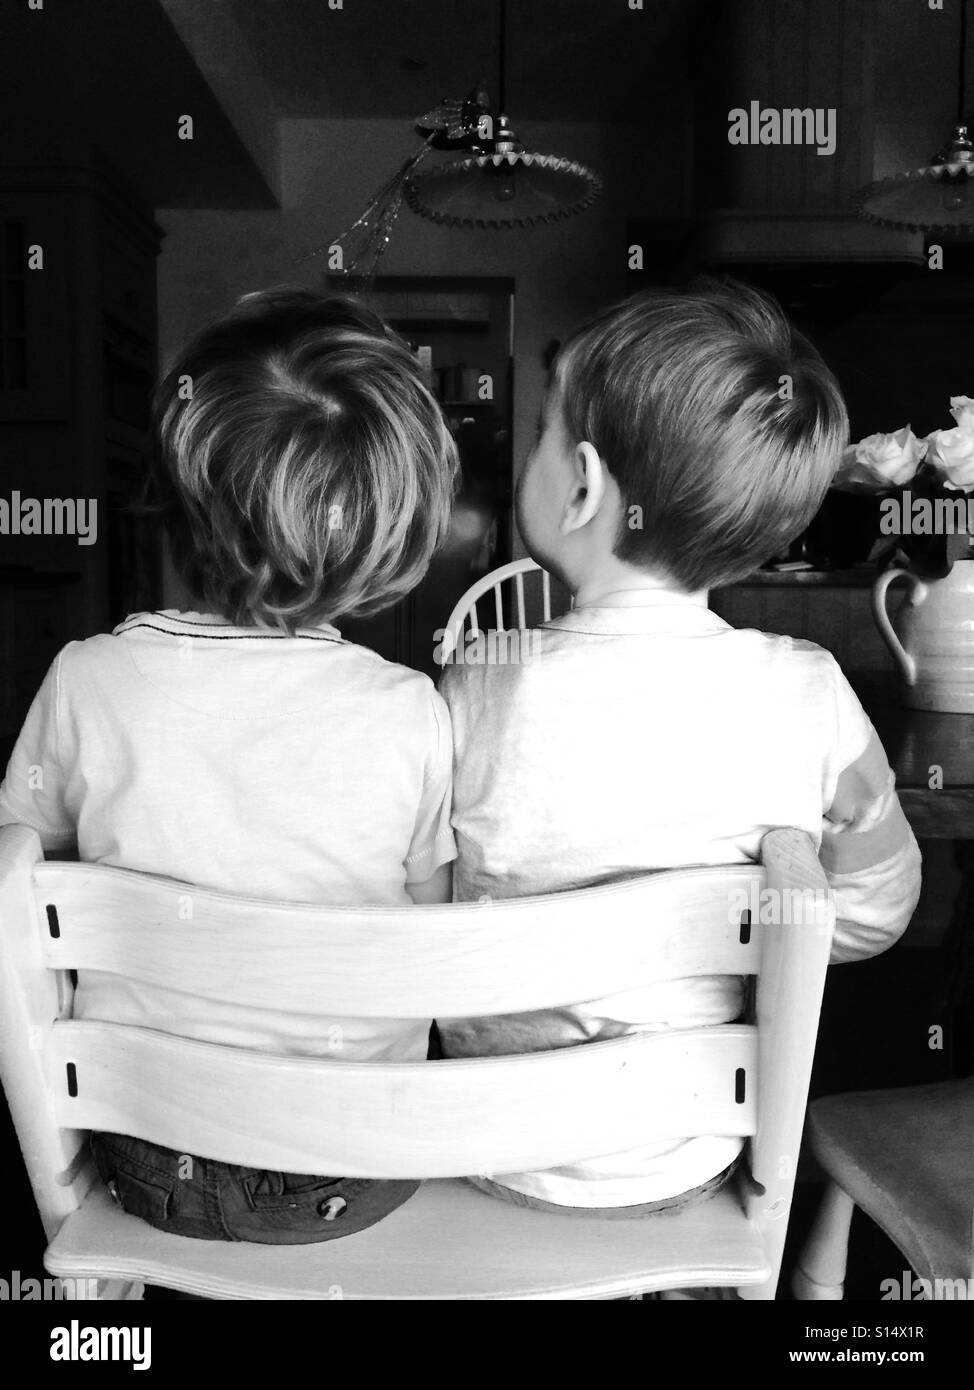 Two boys sitting next to each other on a chair - Stock Image